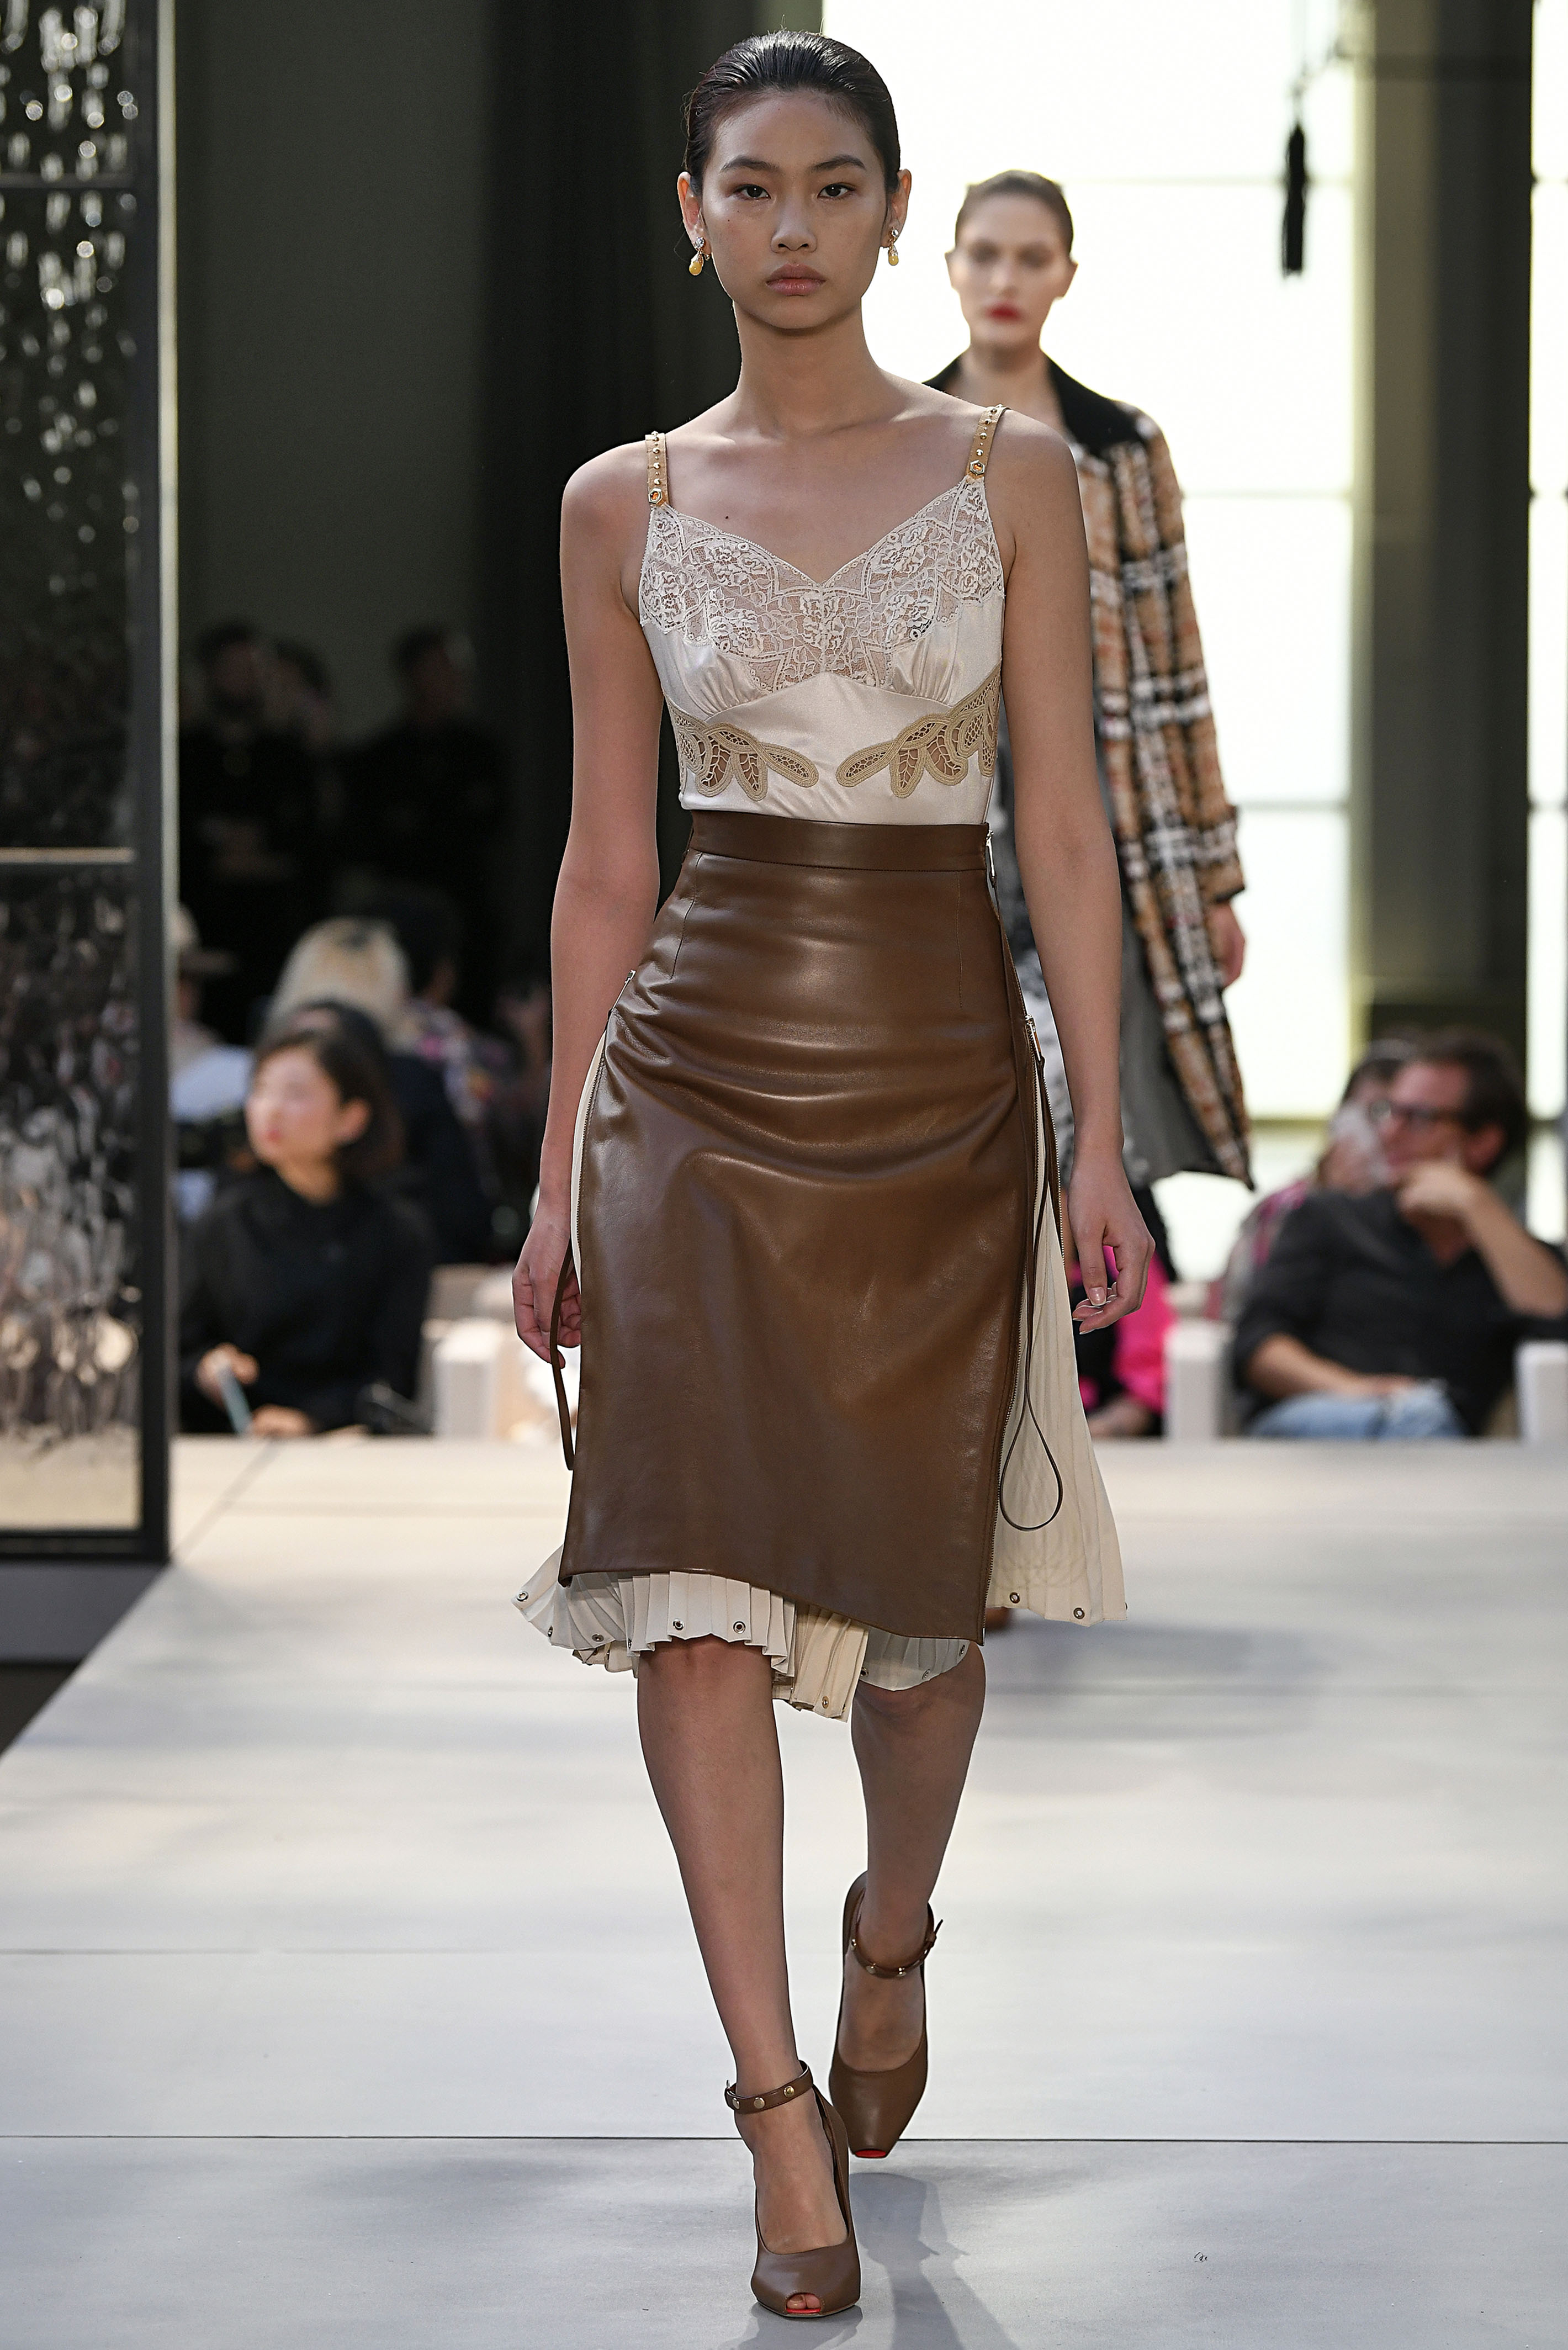 A model in Burberry. Image: Courtesy Getty